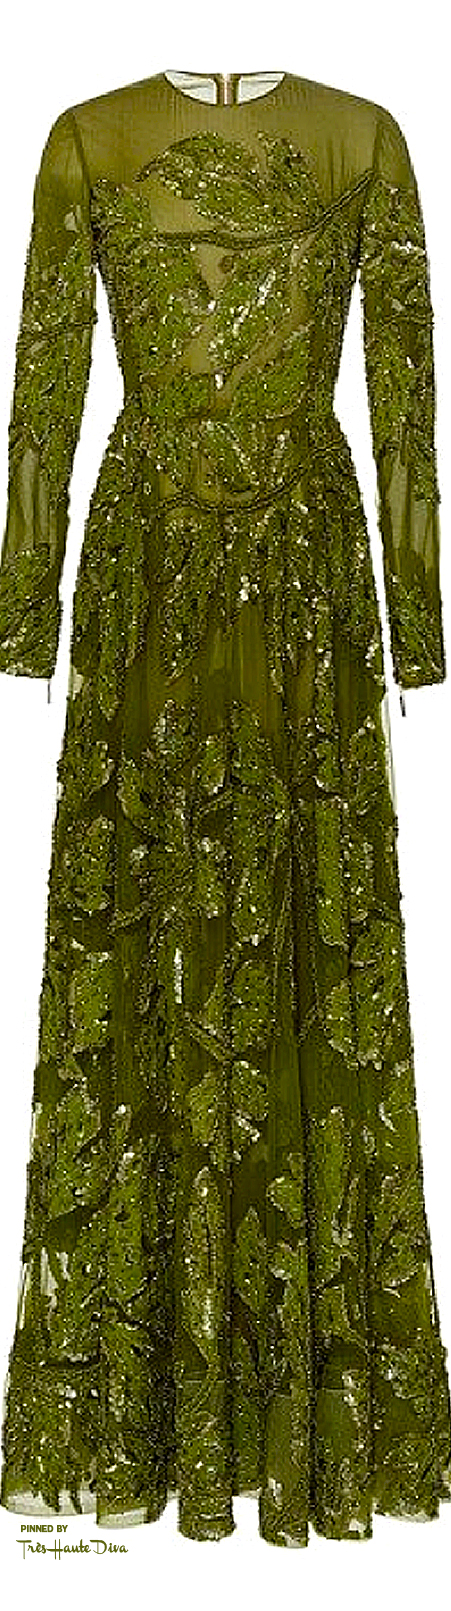 Elie Saab Fall 2015 RTW Green Embroidered Tulle Long Sleeve Gown ♔THD♔